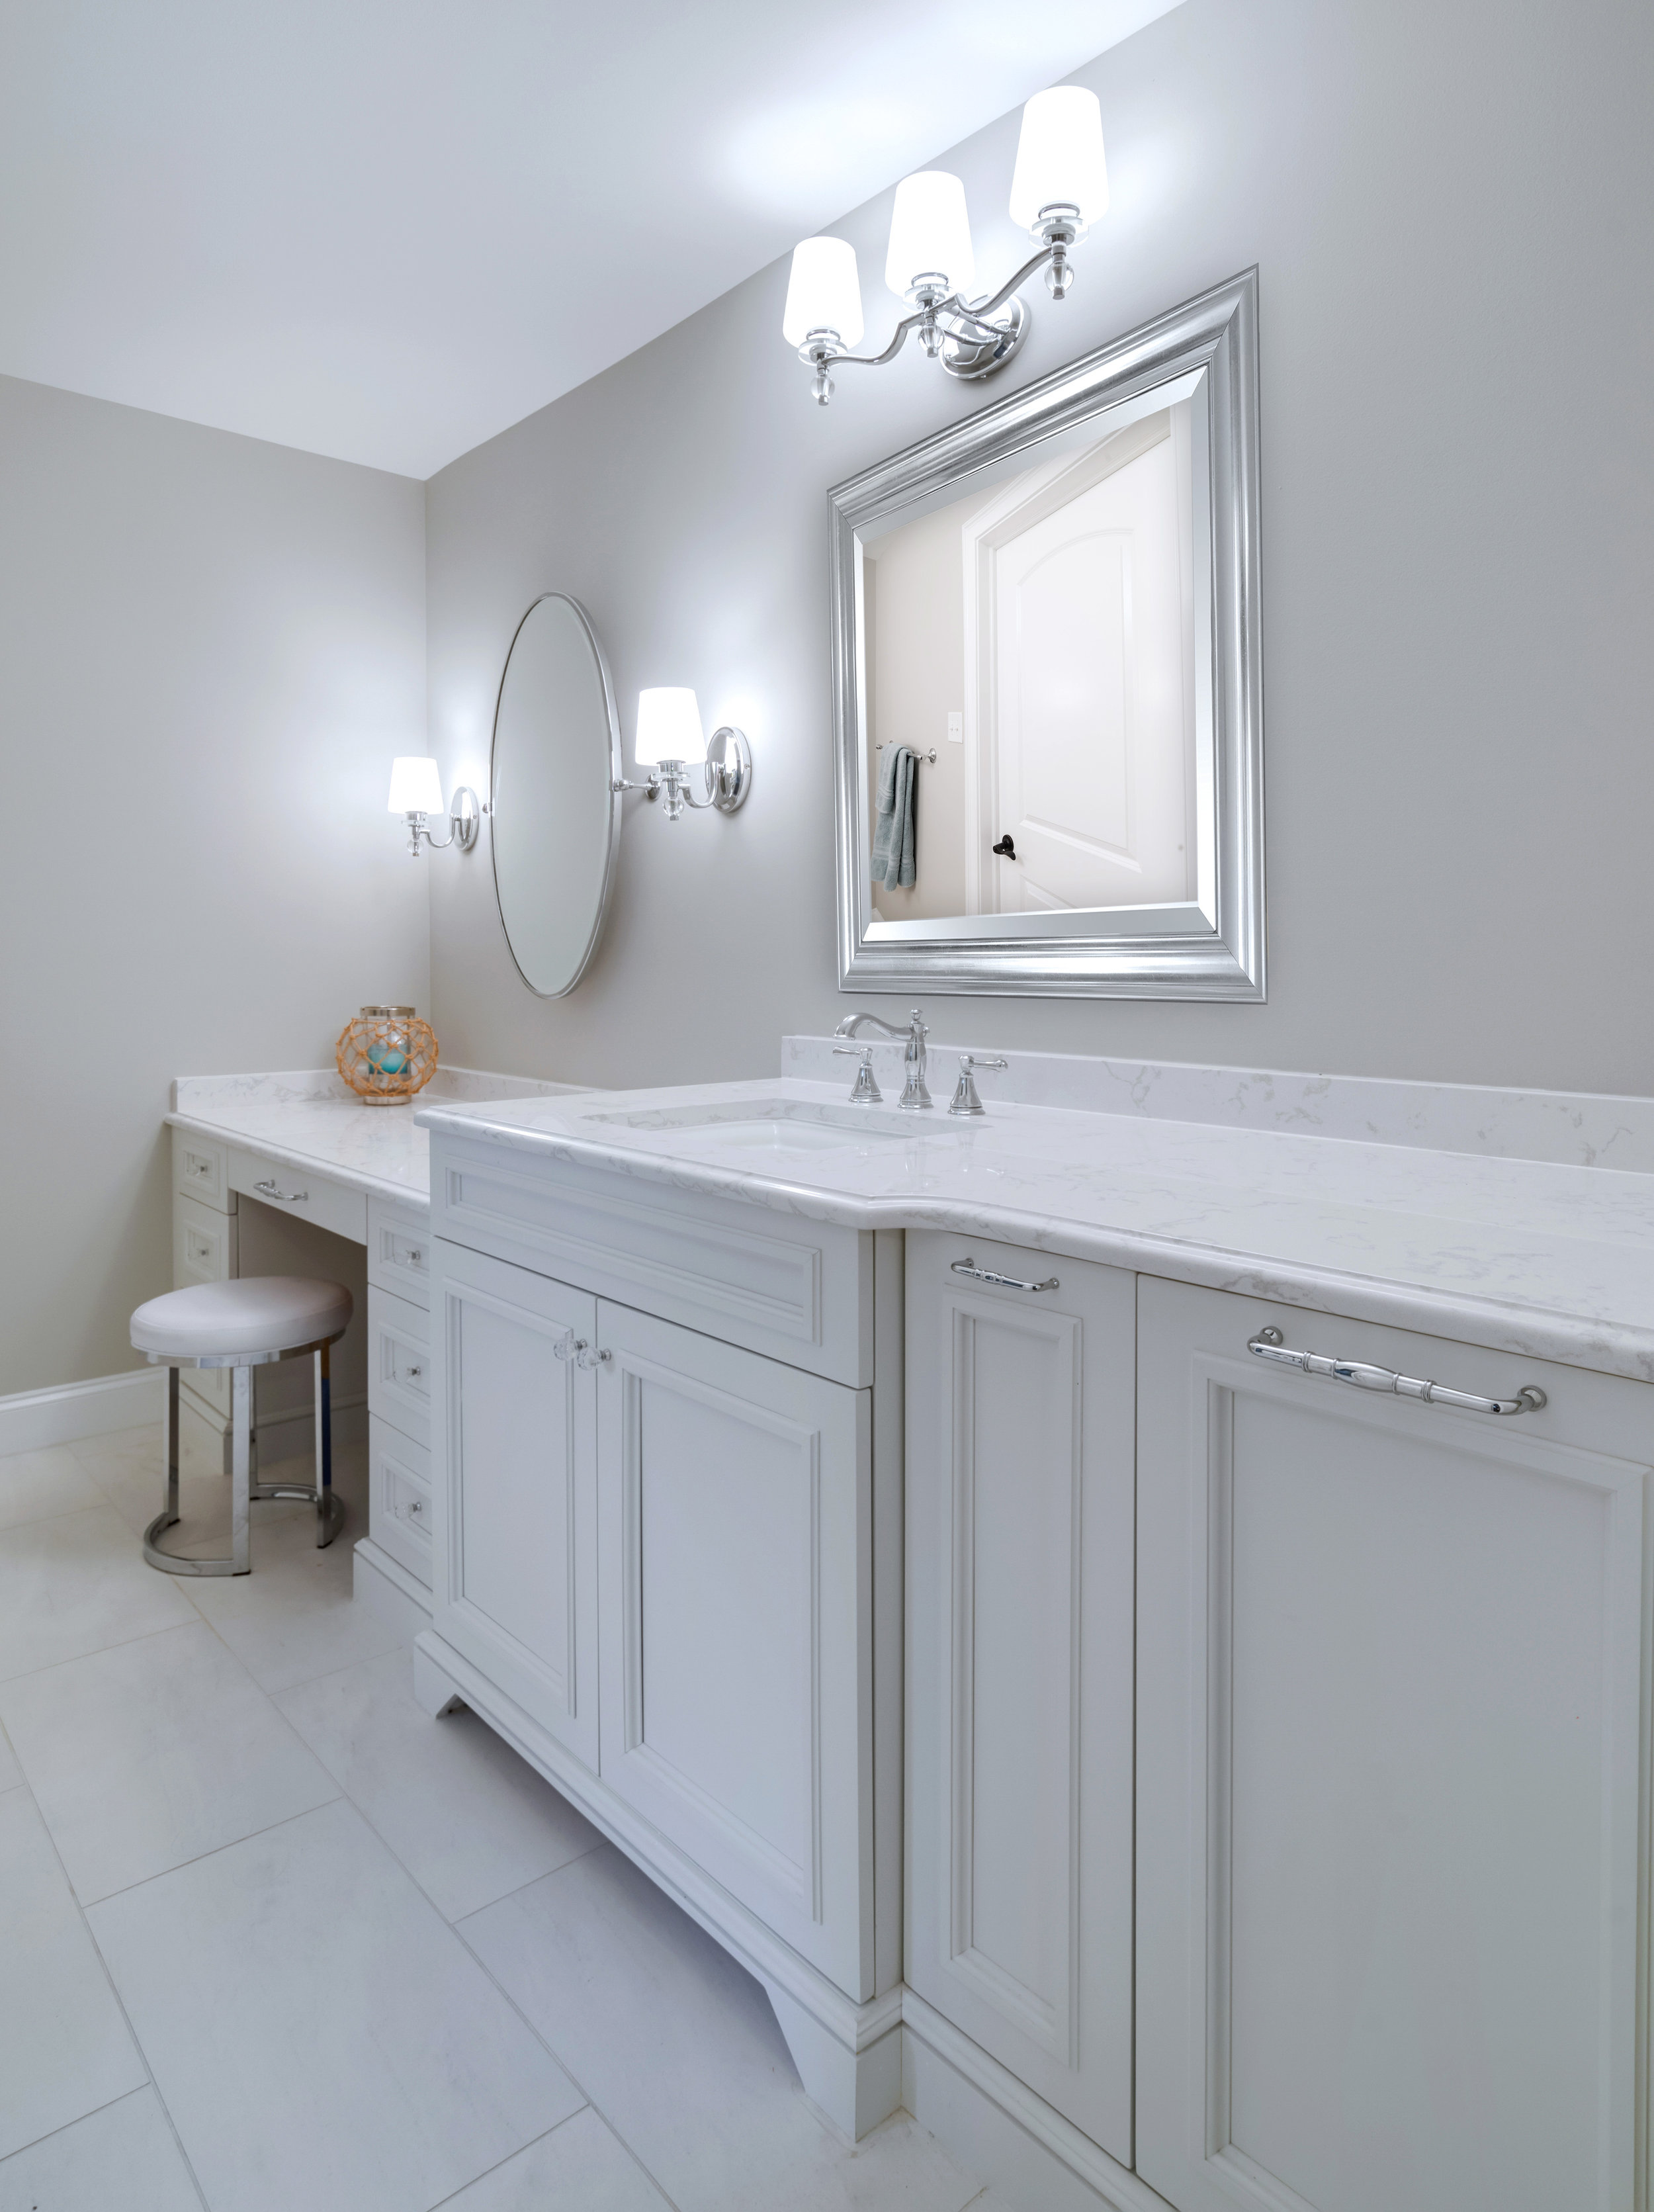 Vanity with seating area